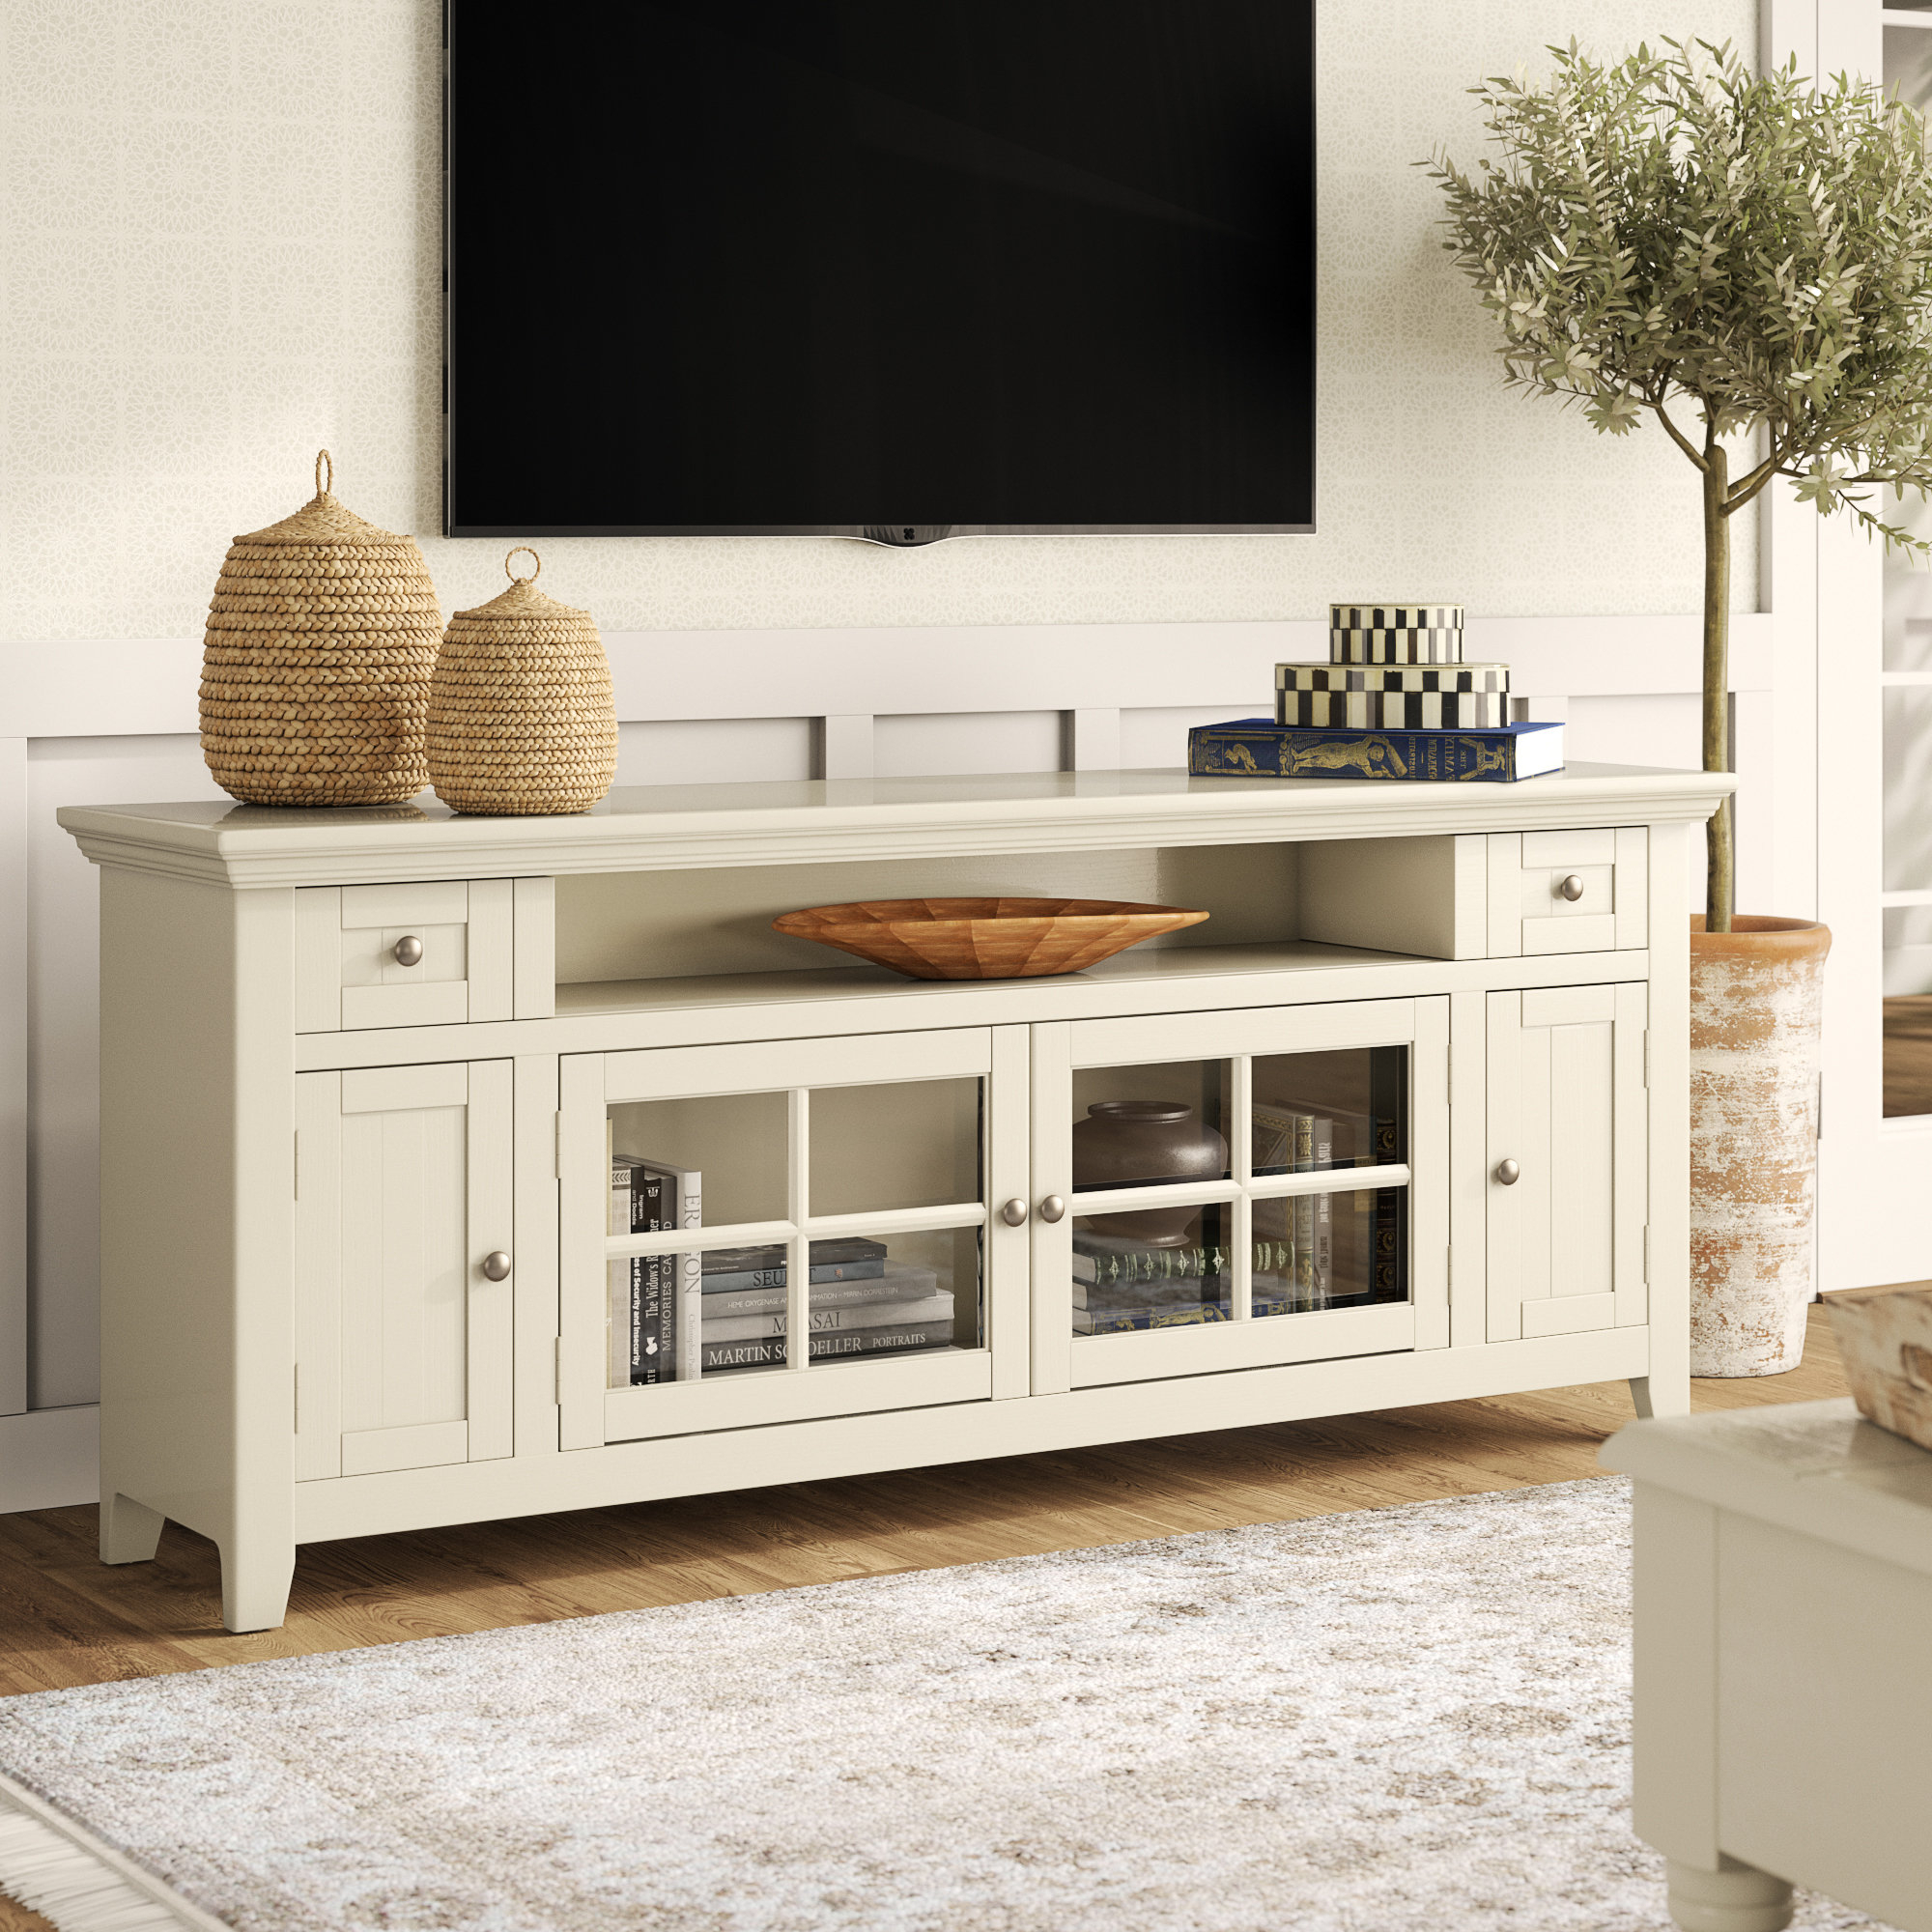 "Calila Tv Stand For Tvs Up To 70"" regarding Colefax Vintage Tv Stands for Tvs Up to 78"" (Image 7 of 30)"